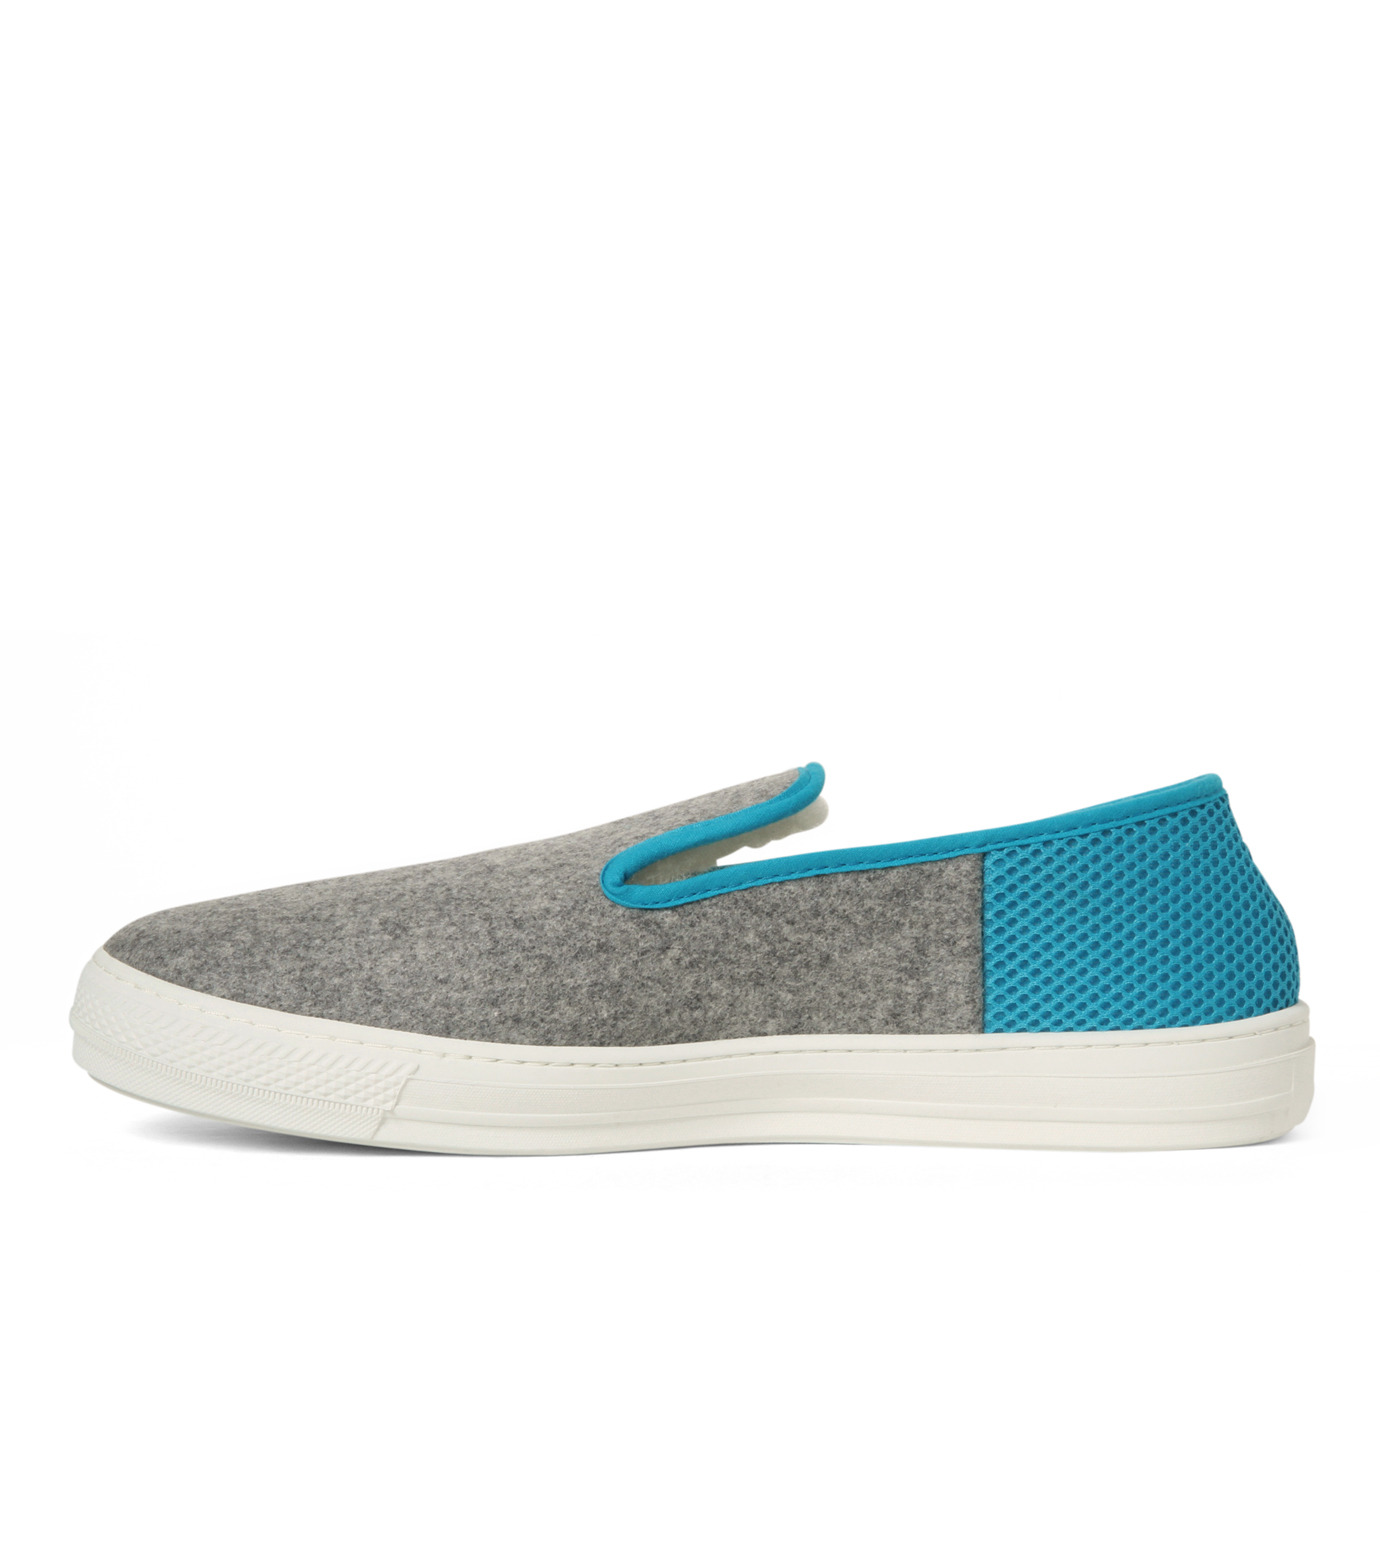 TAISE by SOUSTS(TAISE by SOUSTS)のArsene Turquoise-TURQUOISE(スニーカー/sneaker)-ARSENE-95 拡大詳細画像2